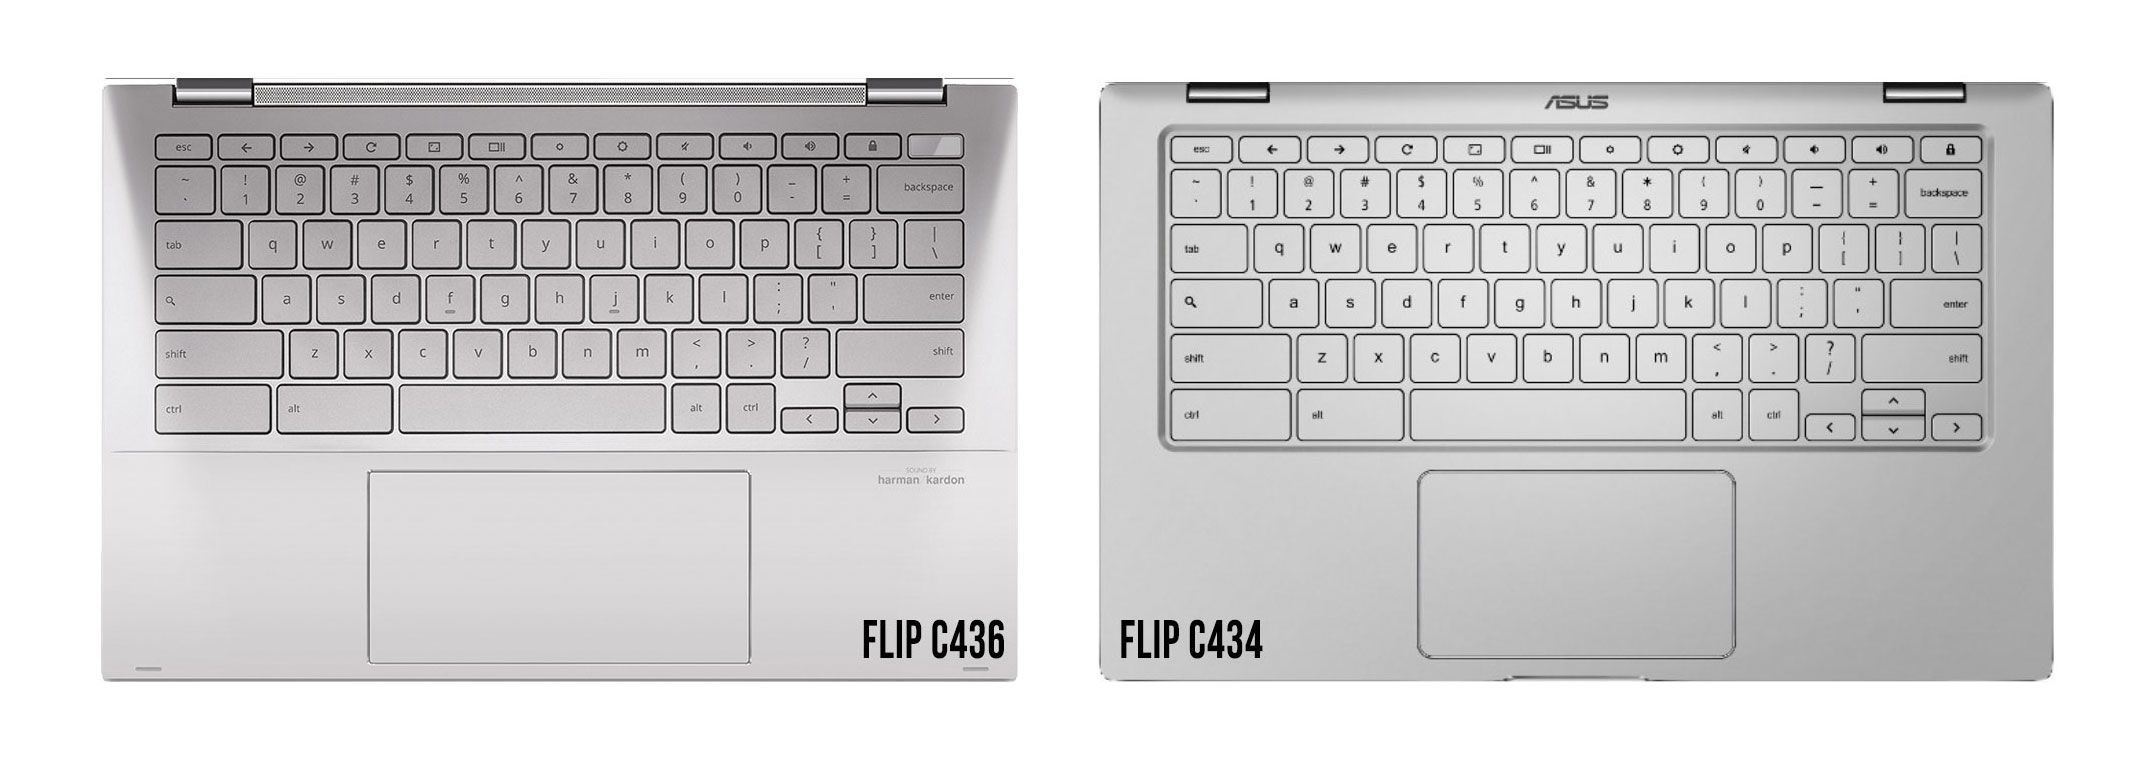 Chromebook Flip C436 gets updated keyboard with finget sensor, and large clickpad